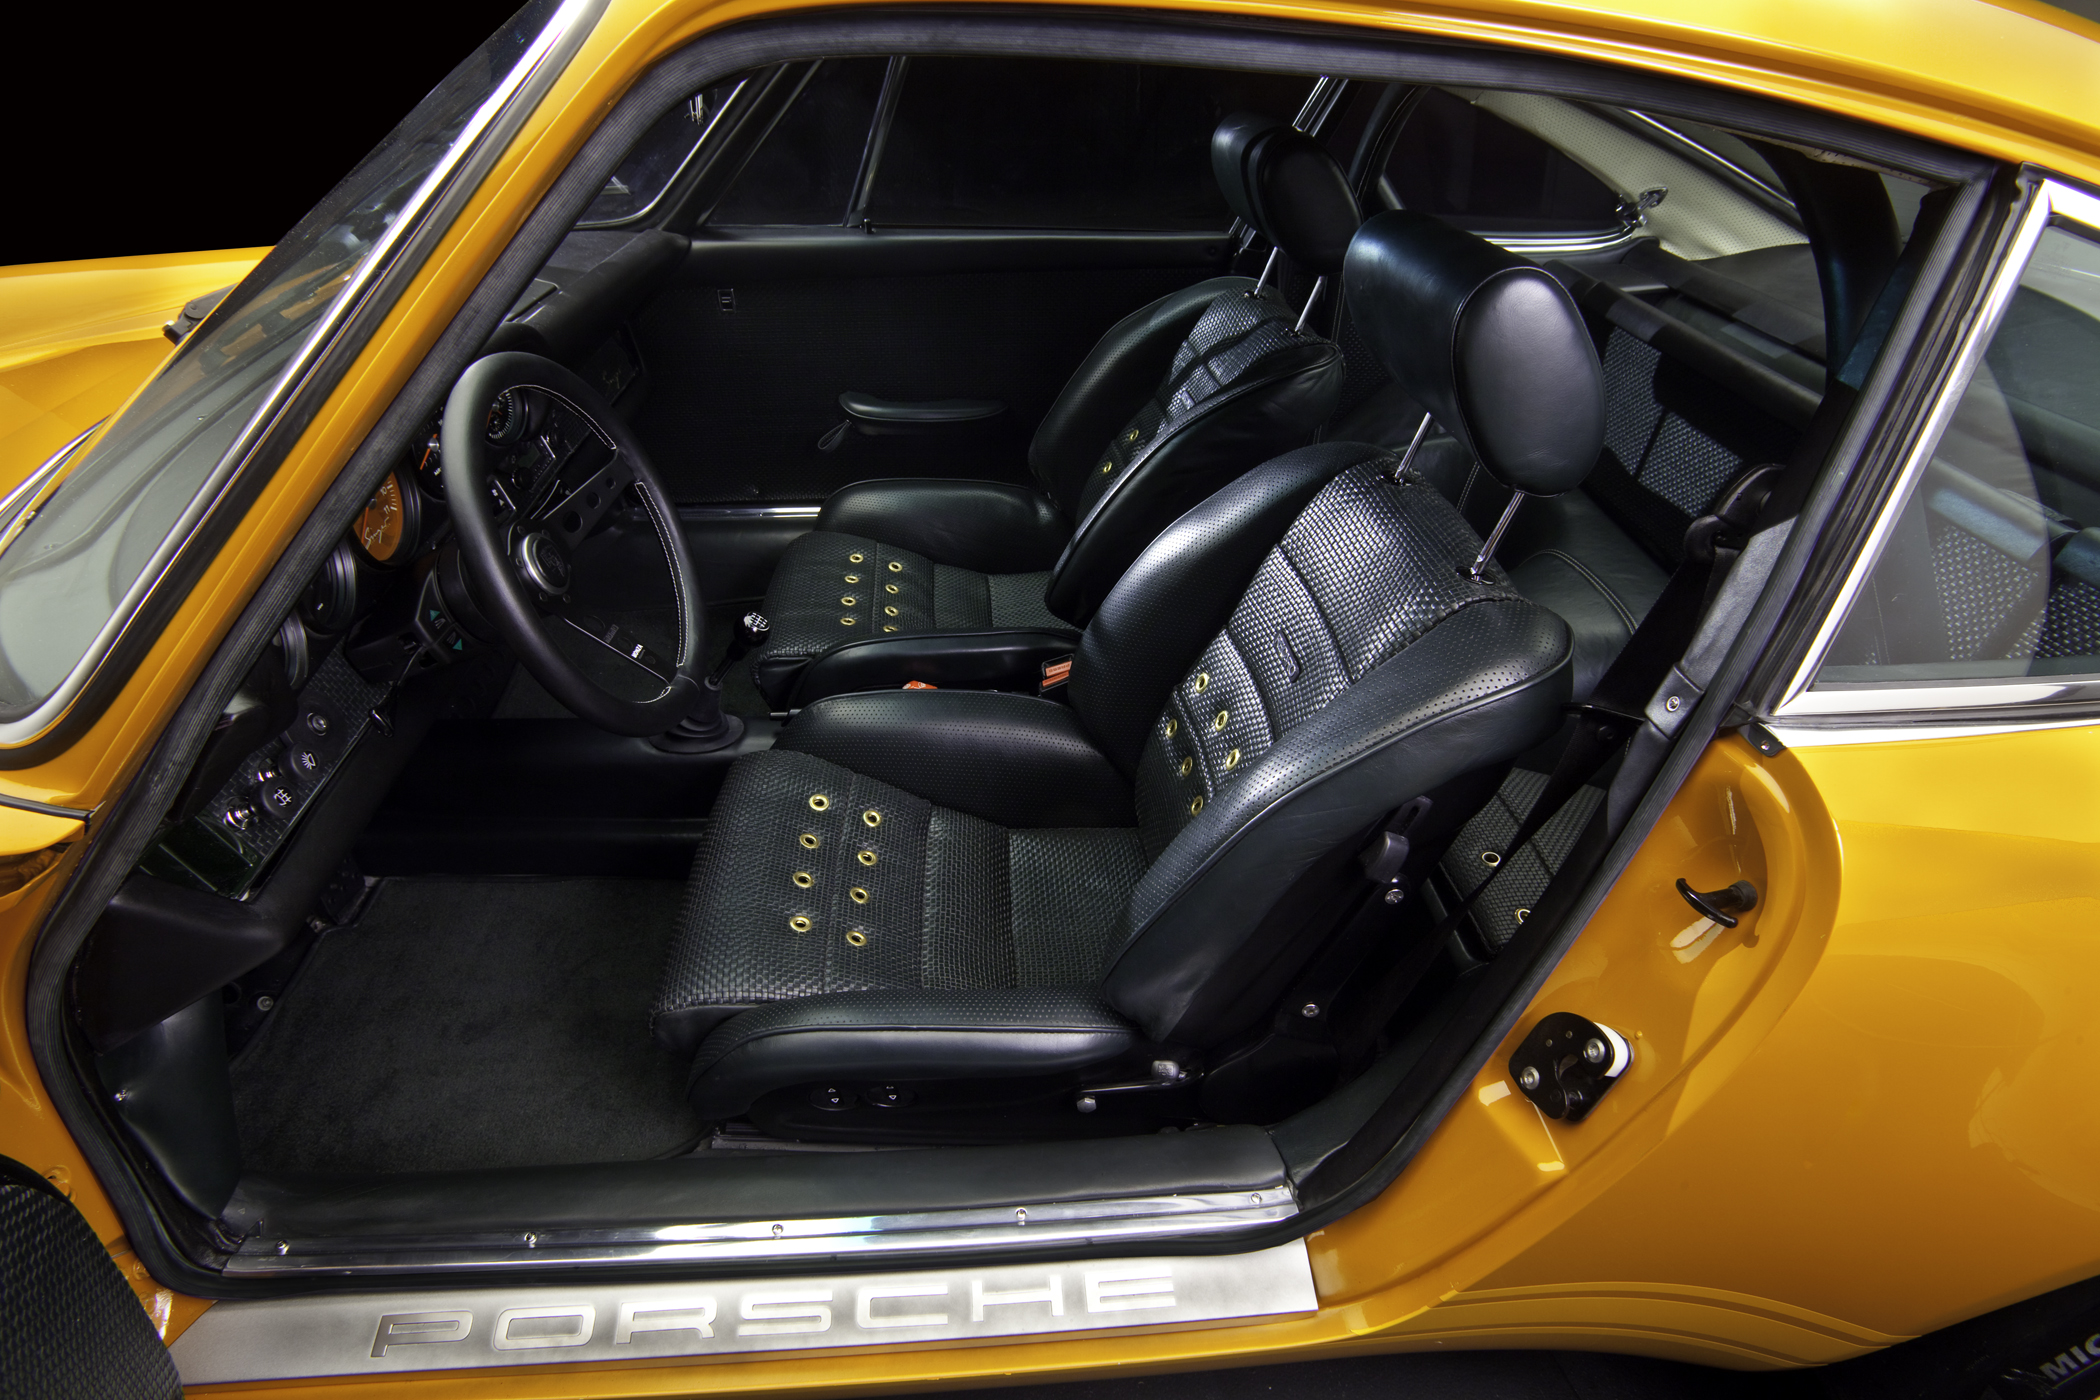 interior_seats Outstanding Lamborghini Countach 25th Anniversary '88 Cars Trend